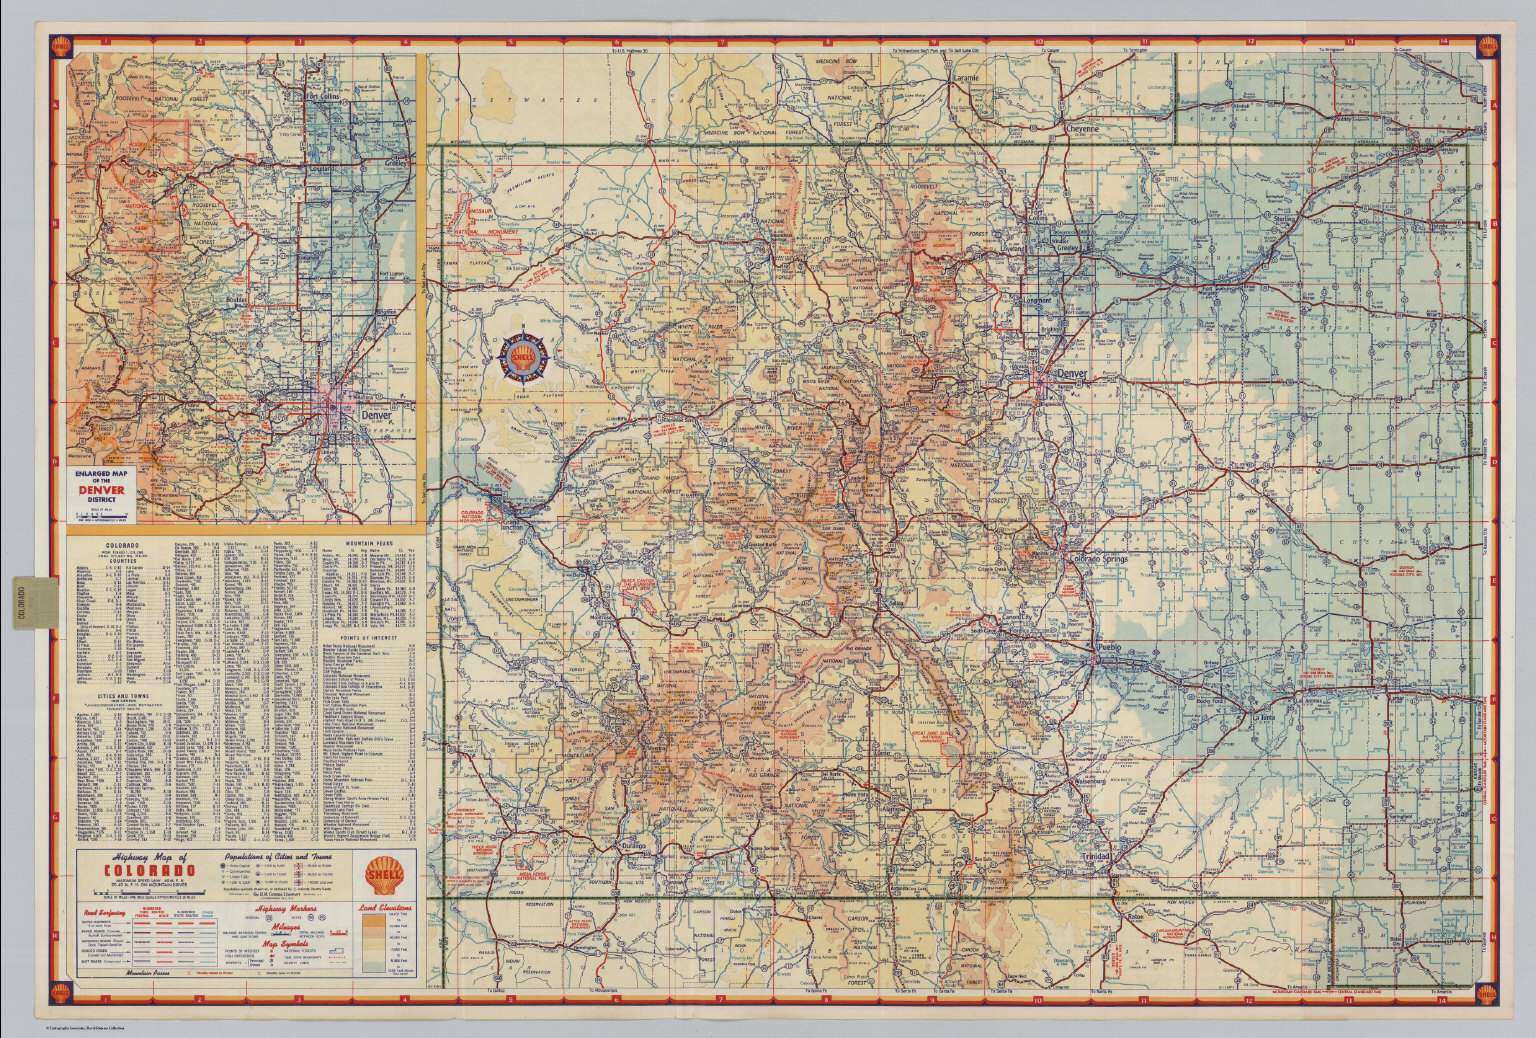 Shell Highway Map of Colorado.   David Rumsey Historical Map